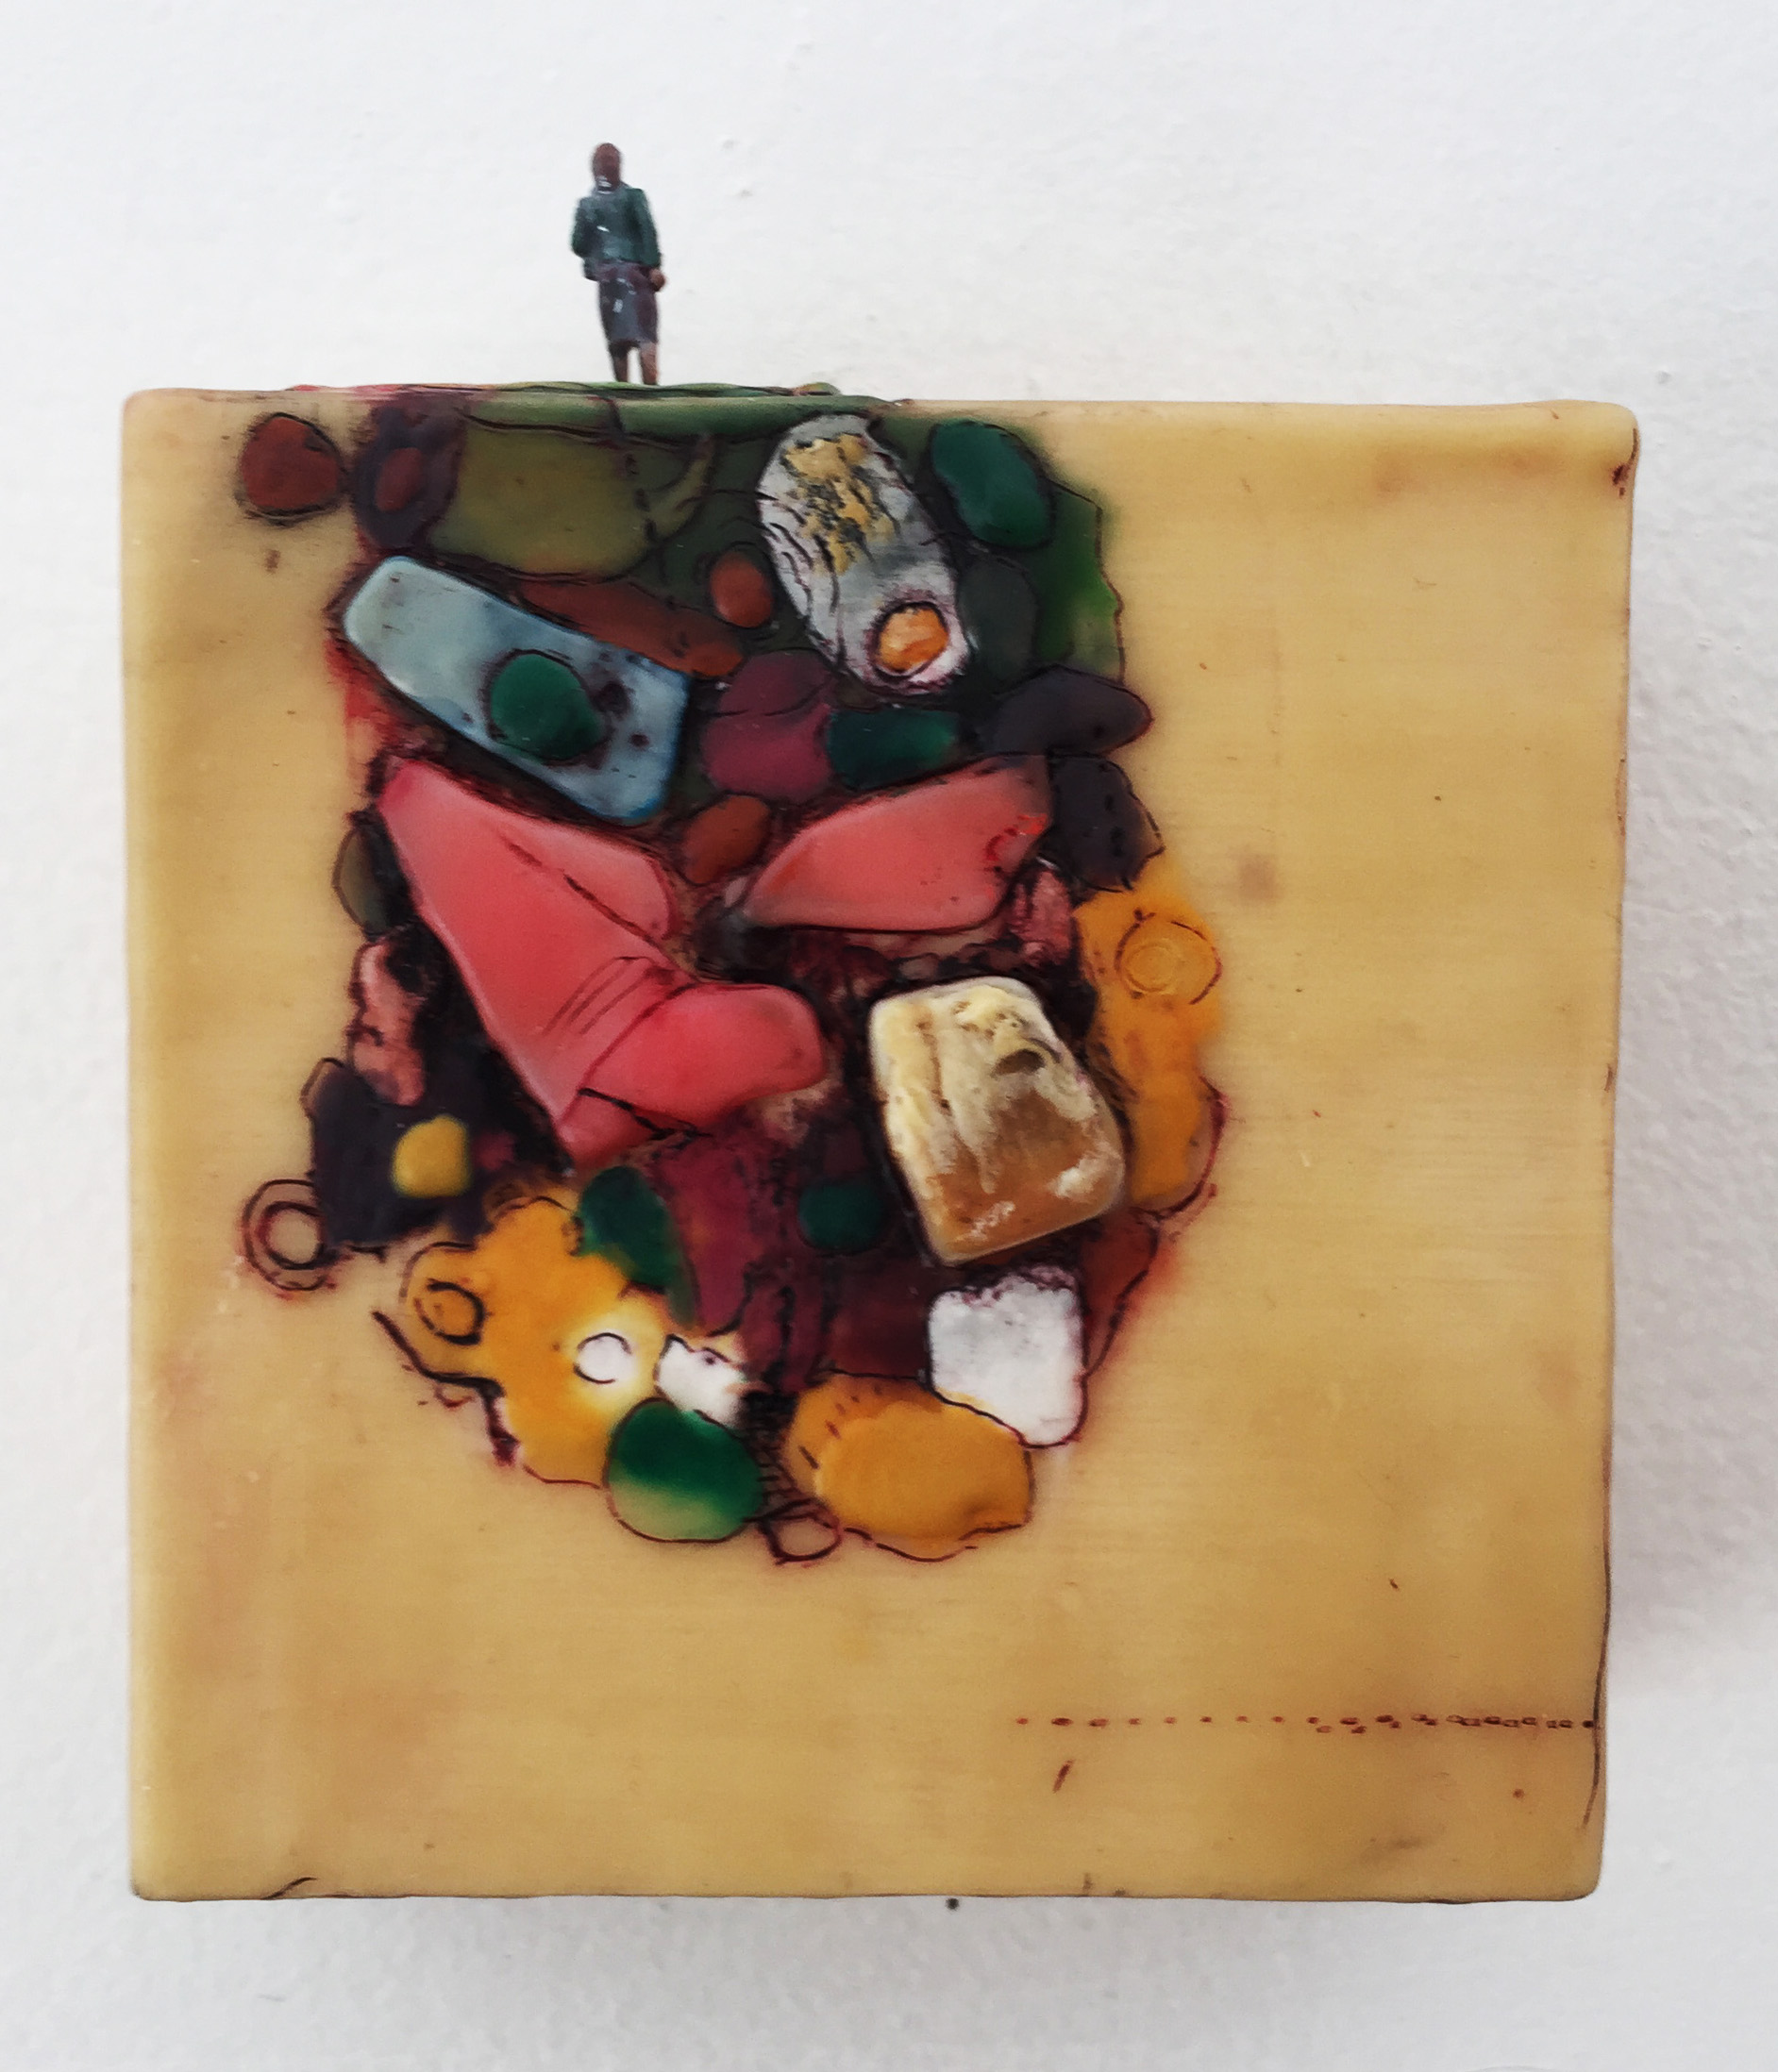 Hélène Farrar, What We Carry: Work Day, encaustic and painted small person model,4 x 4 inches